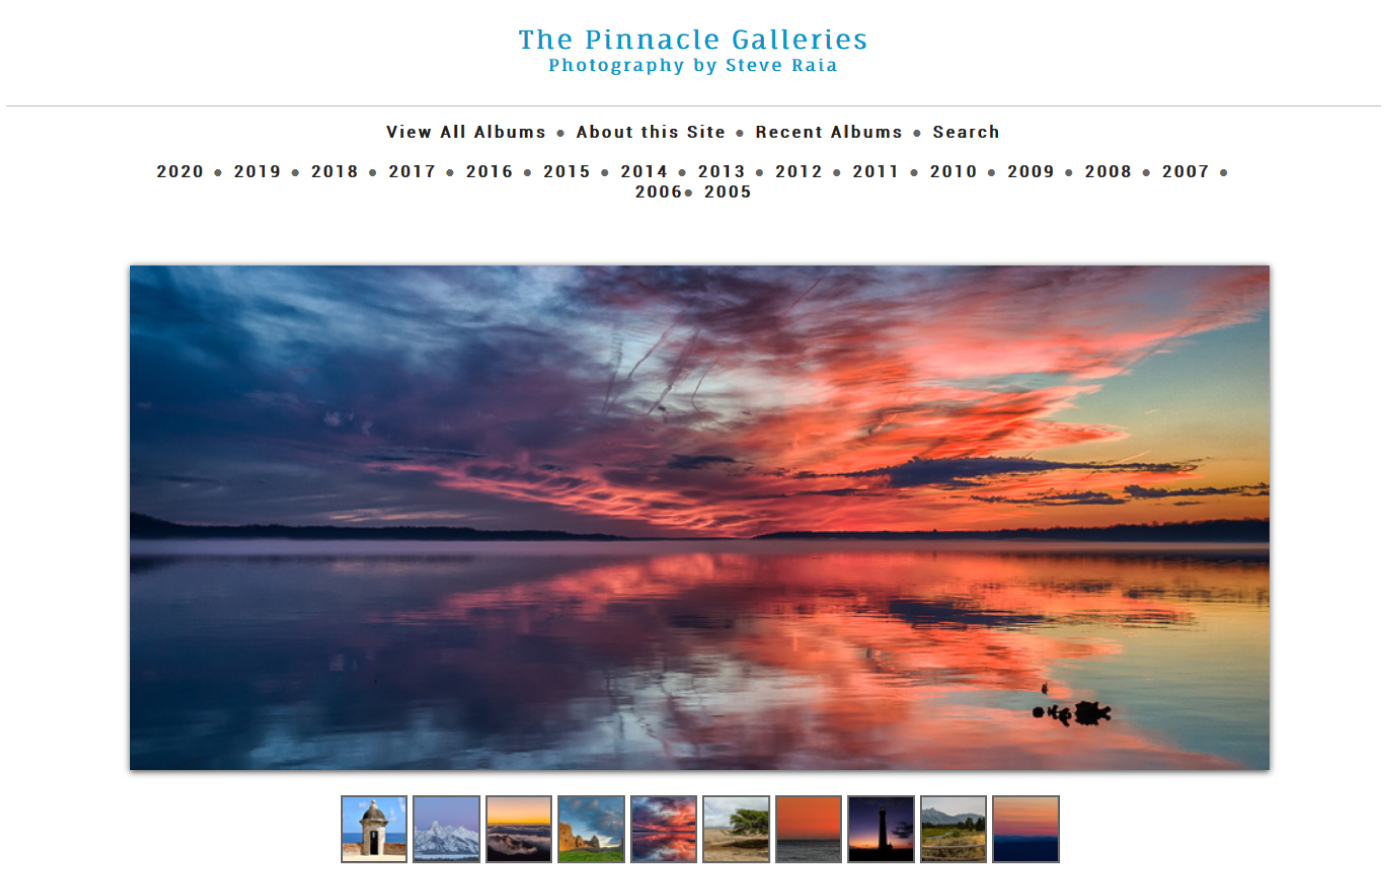 The Pinnaccle Galleries